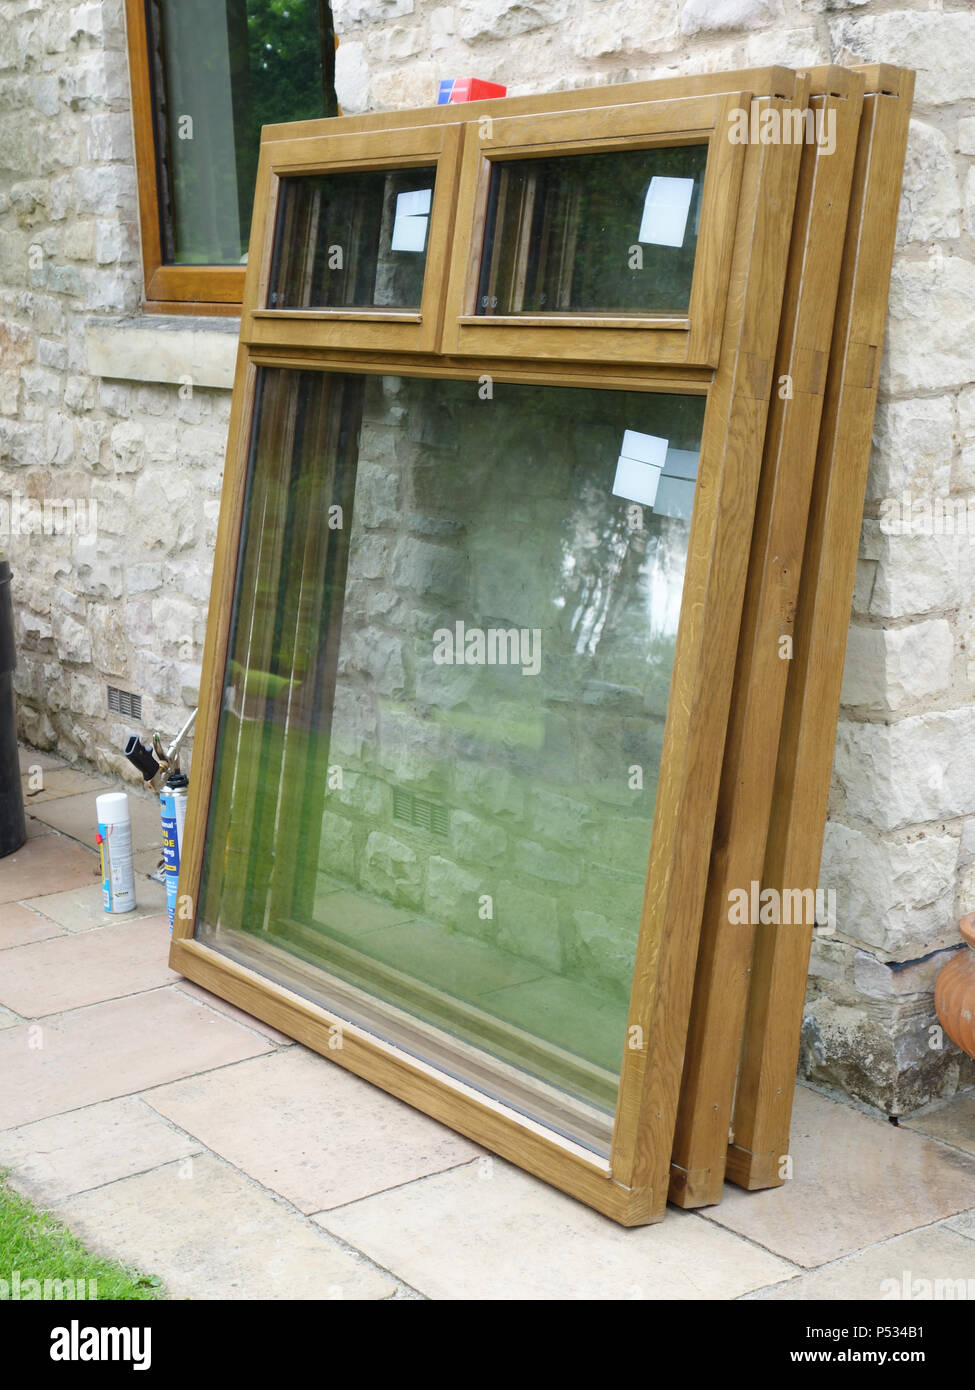 Three New Double Glazed Solid Oak Window Frames To Be Installed And